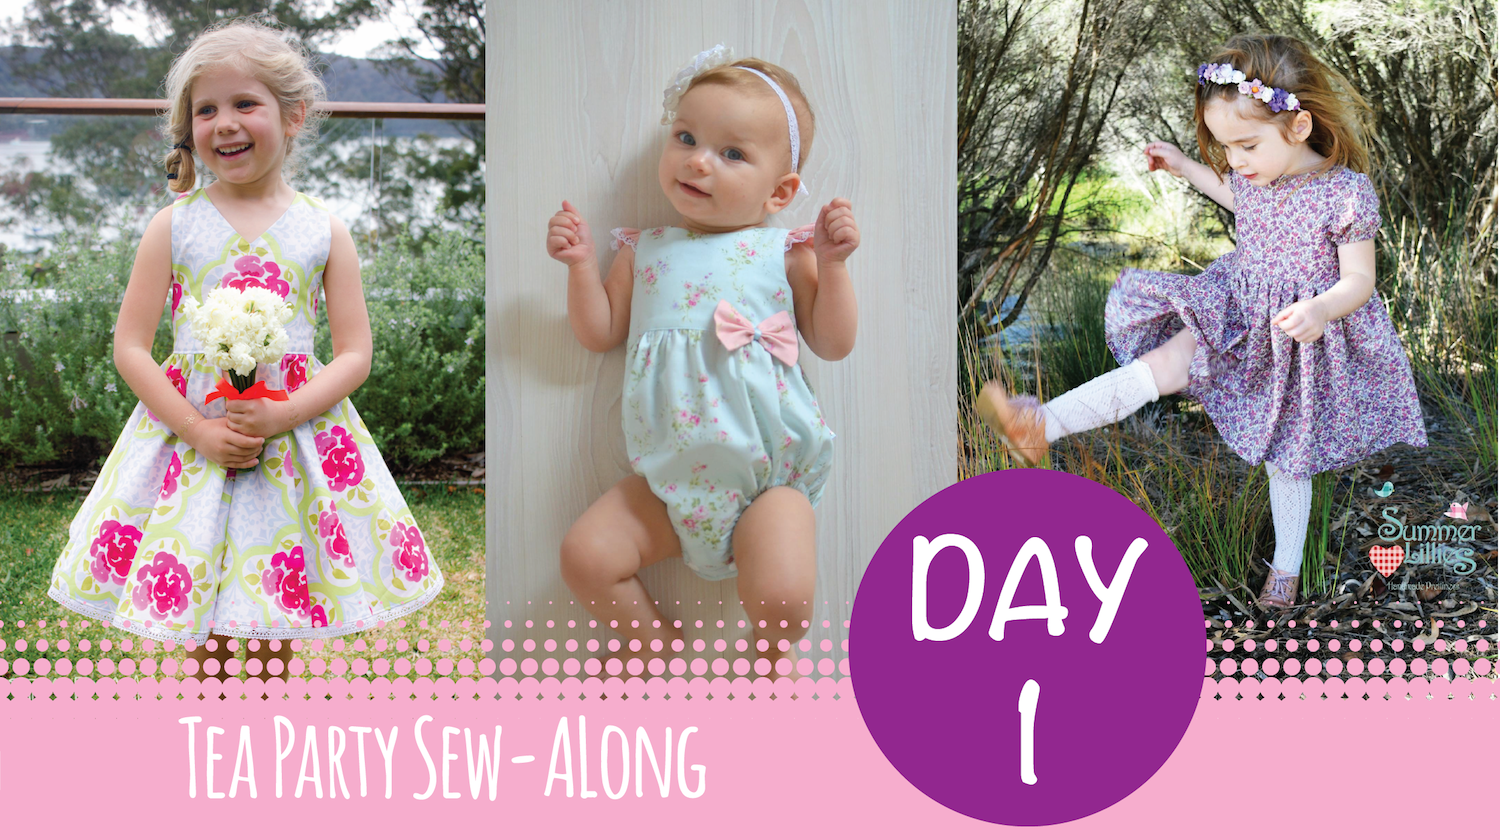 Tadah Tea Party Sew Along - Day 1